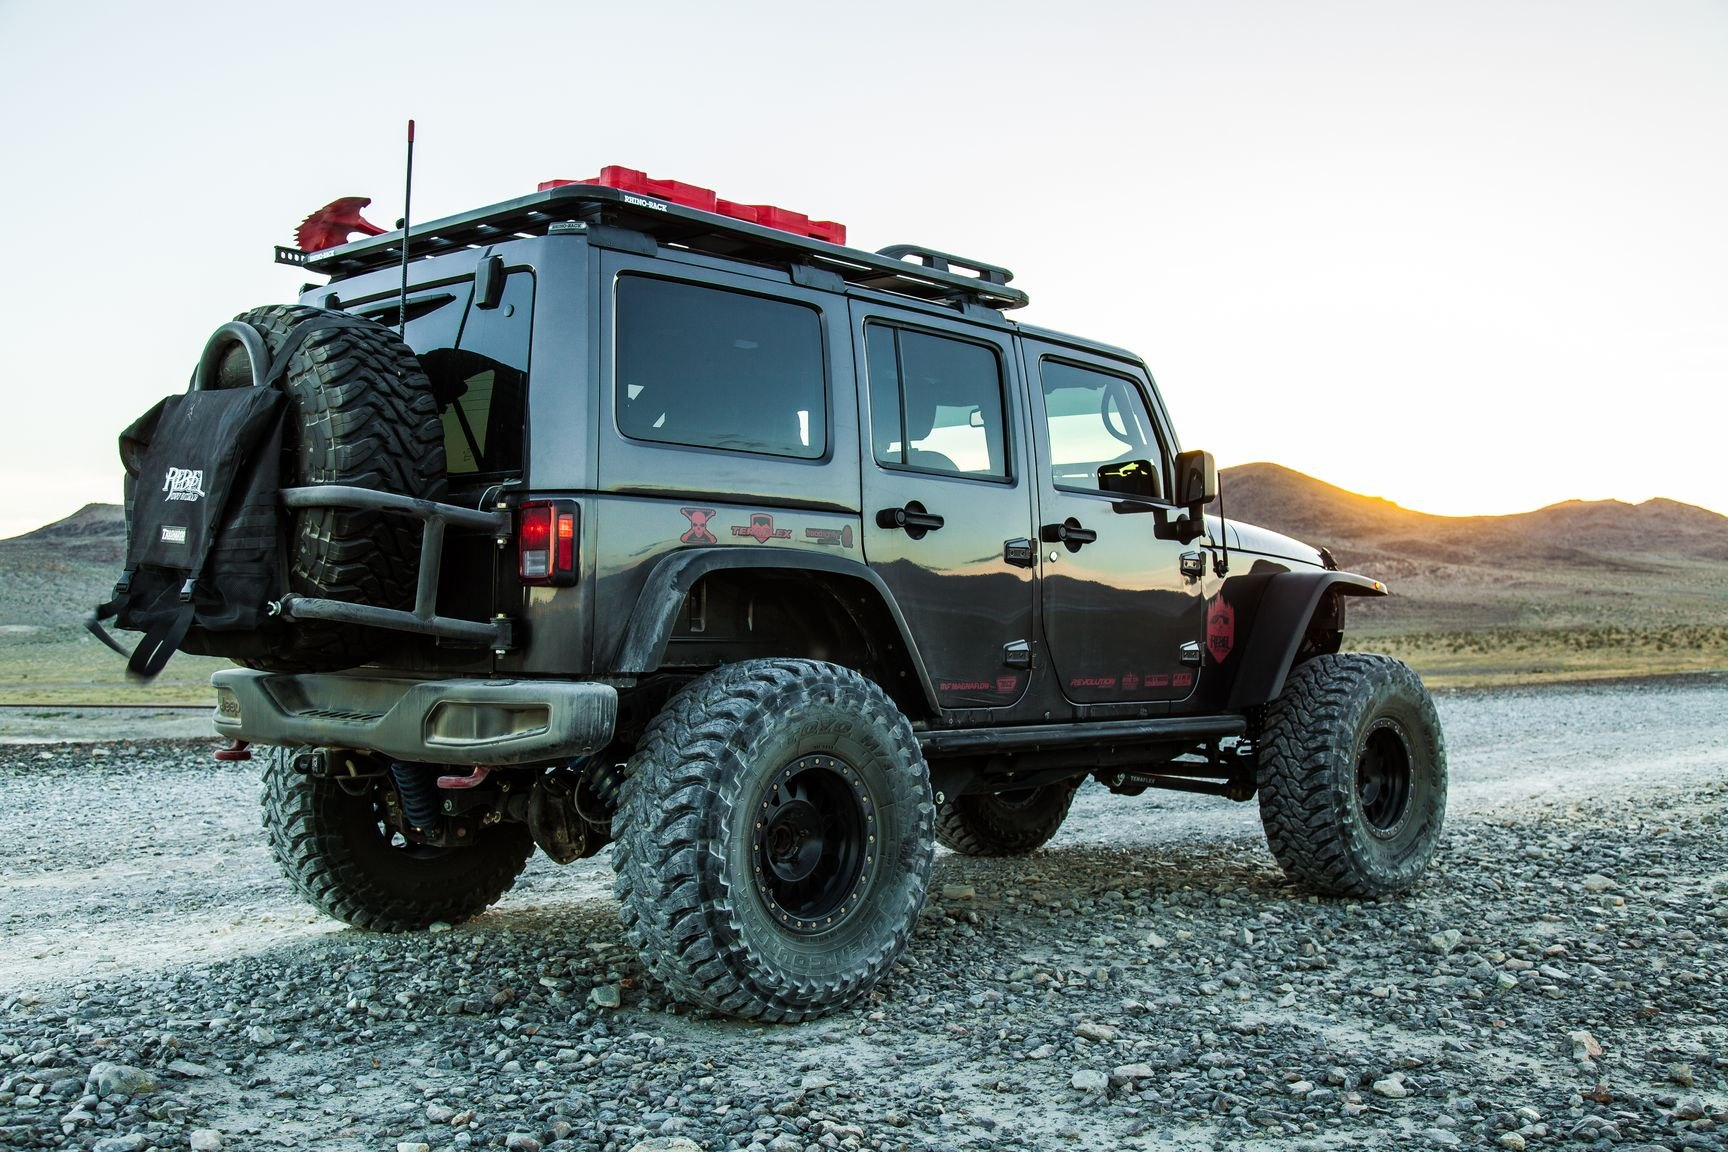 Black Lifted Jeep Wrangler Customized For Active Lifestyle